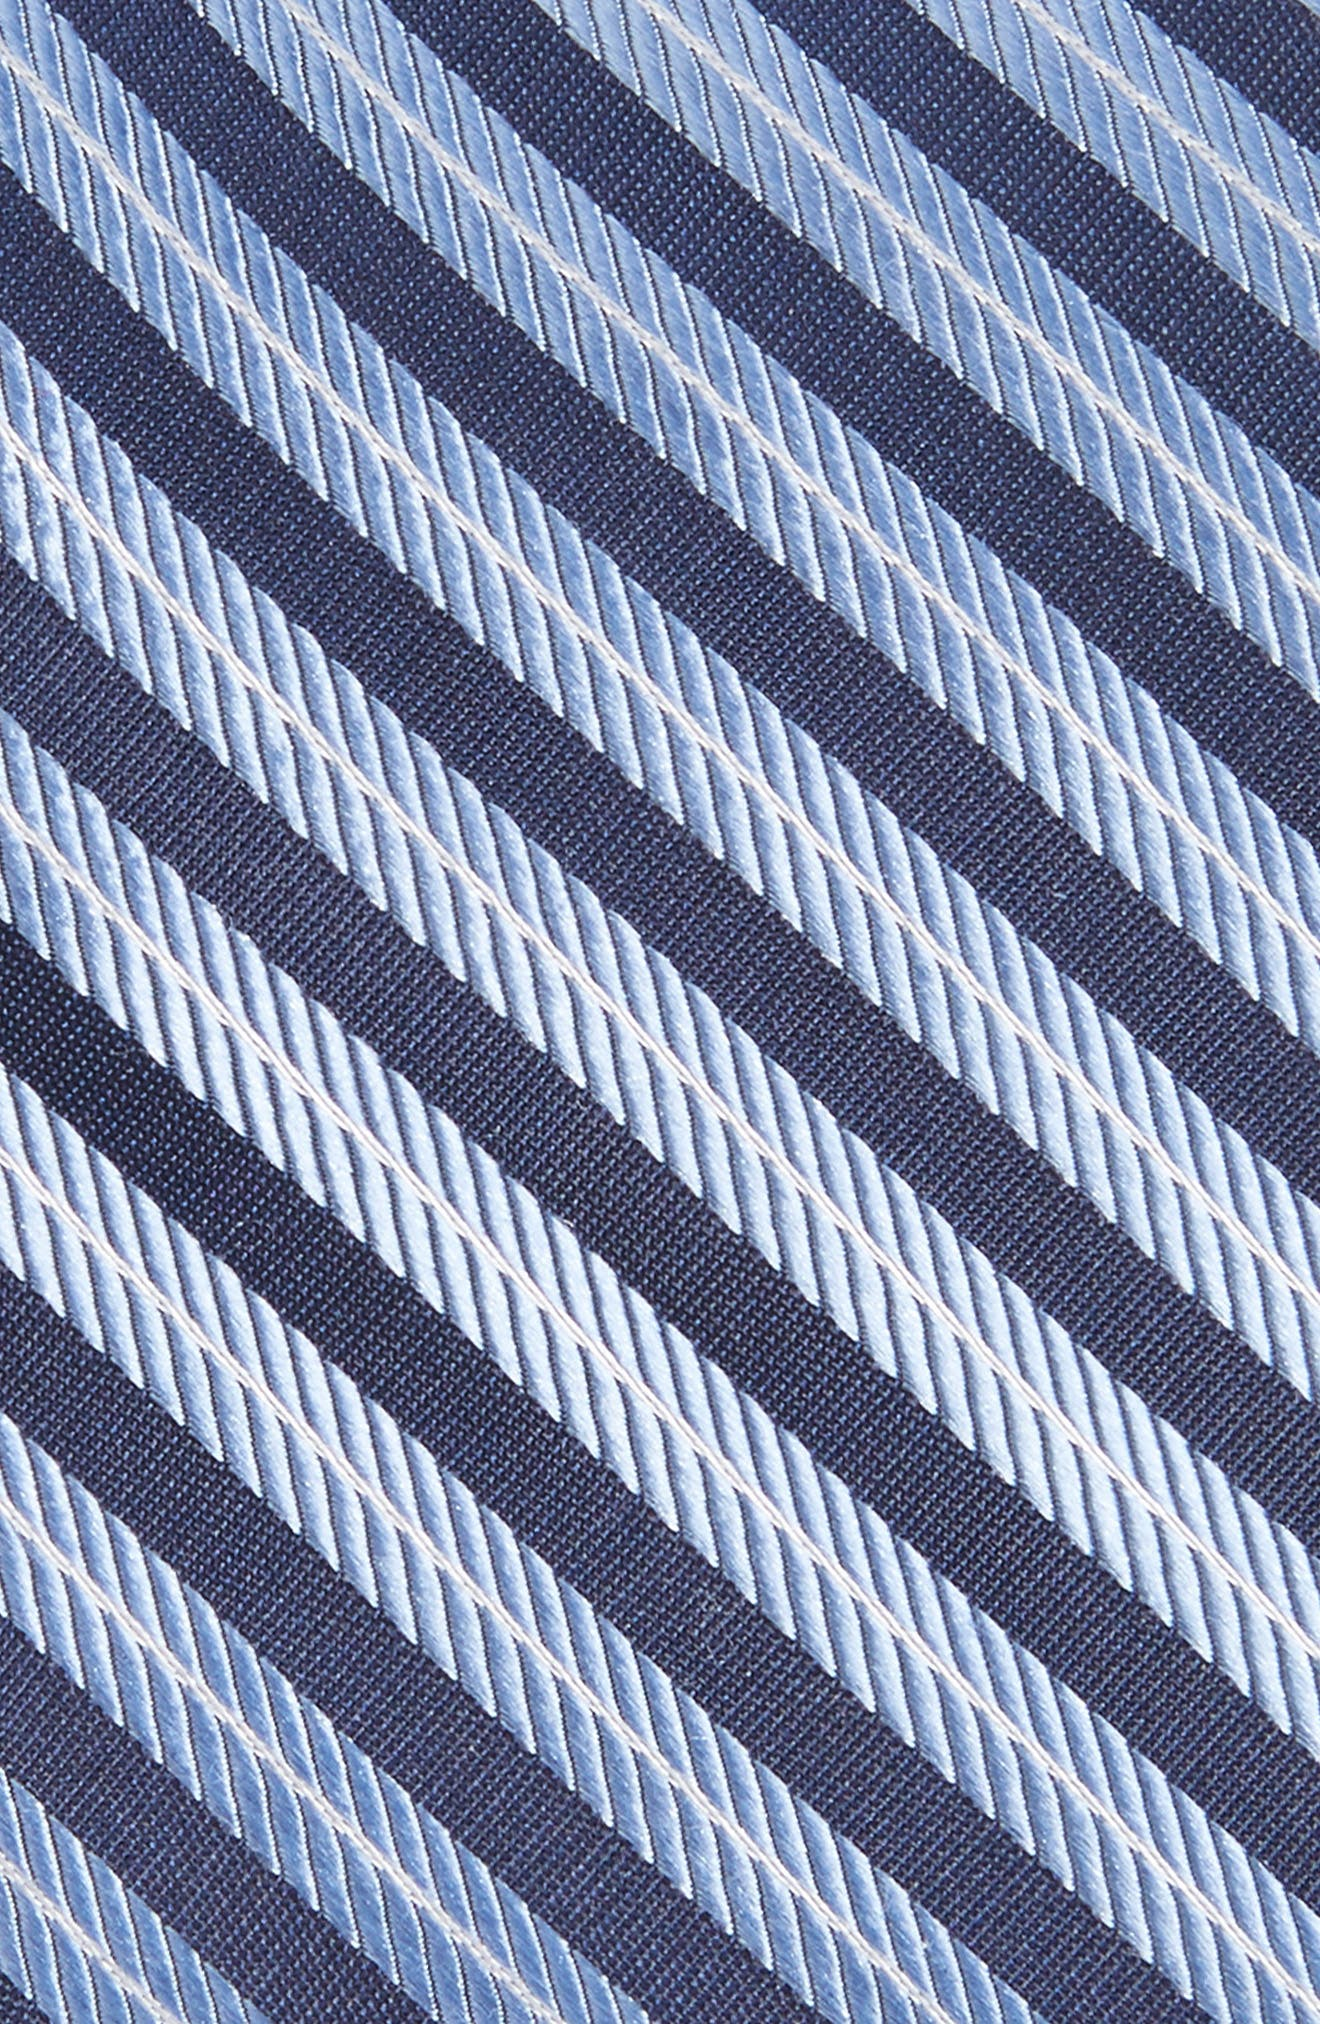 Milliner Stripe Silk Tie,                             Alternate thumbnail 2, color,                             400